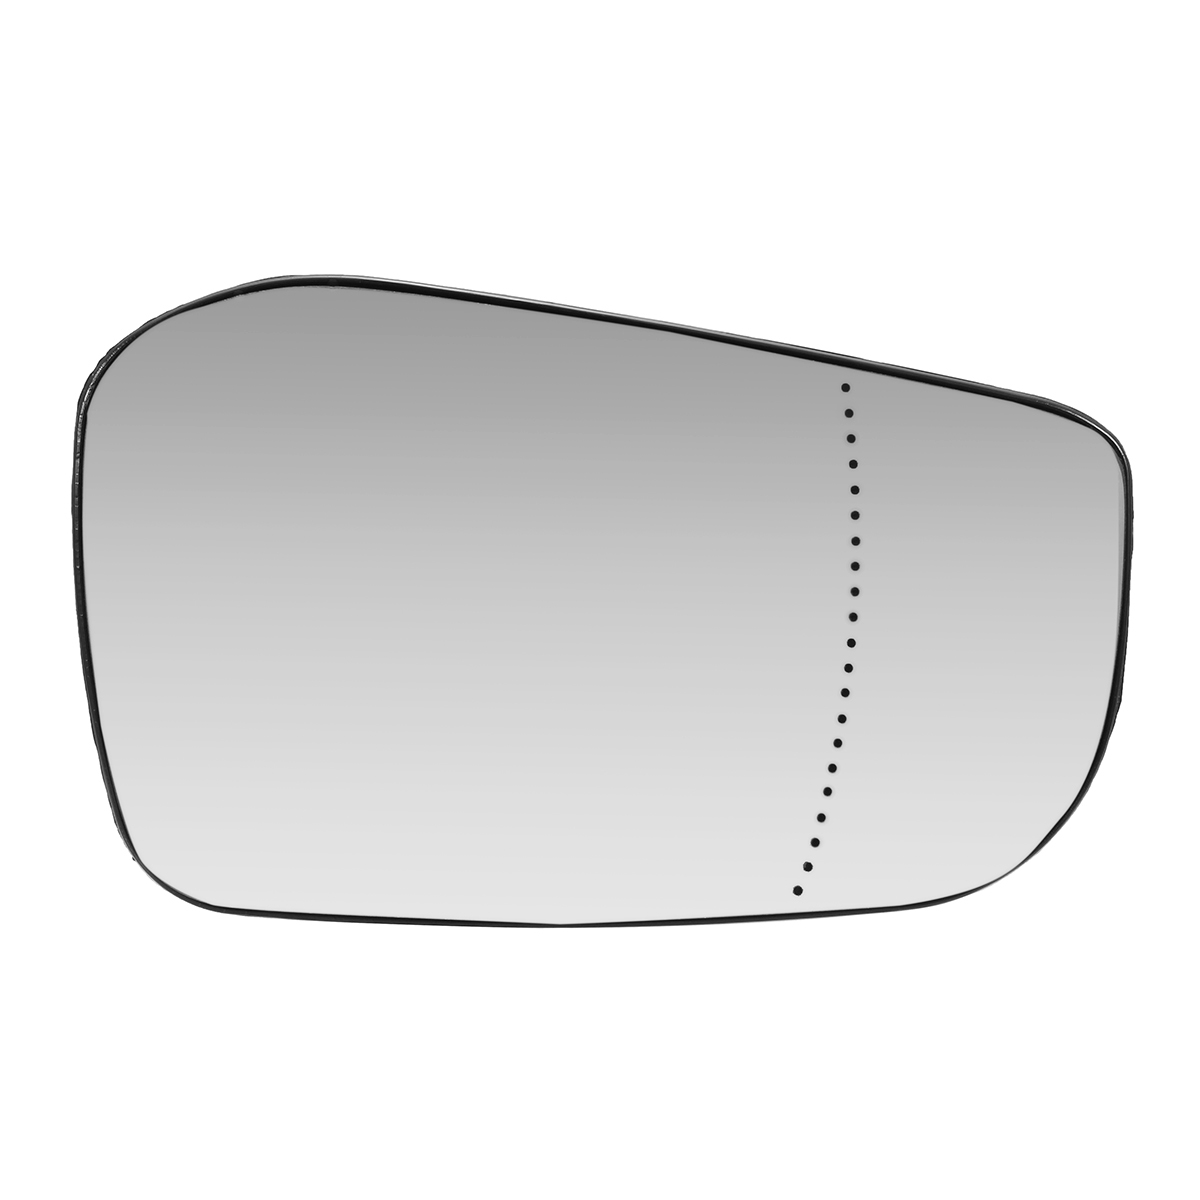 Right Driver side Wide Angle Wing door mirror glass for Volvo s80 2003-2006